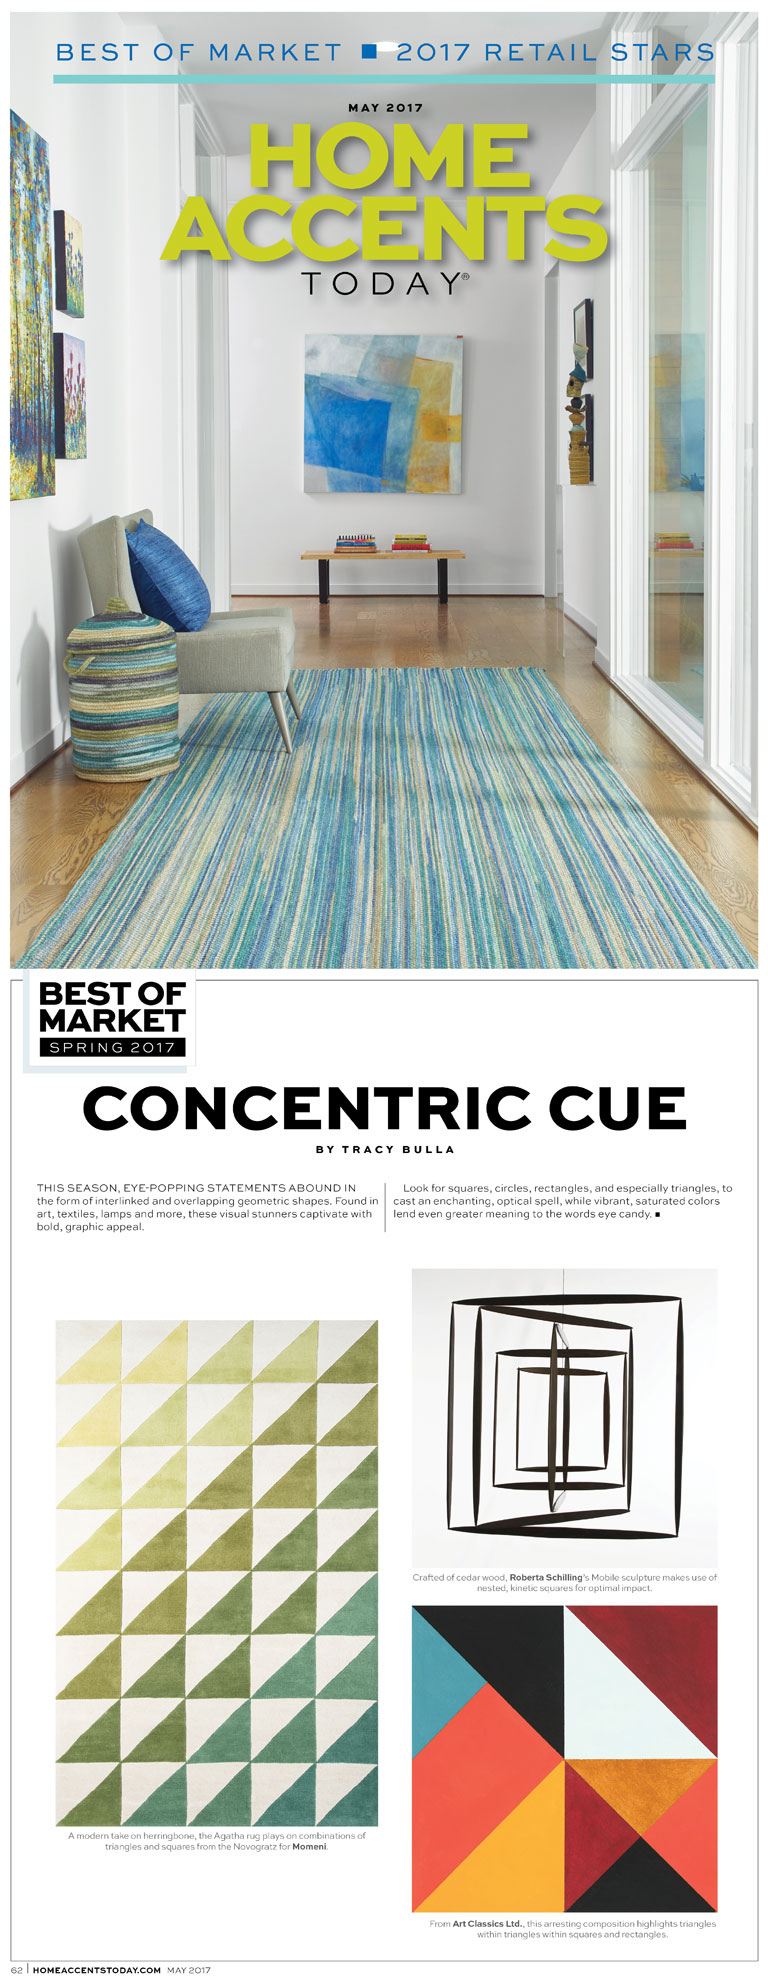 Home Accents Today | Concentric Cues